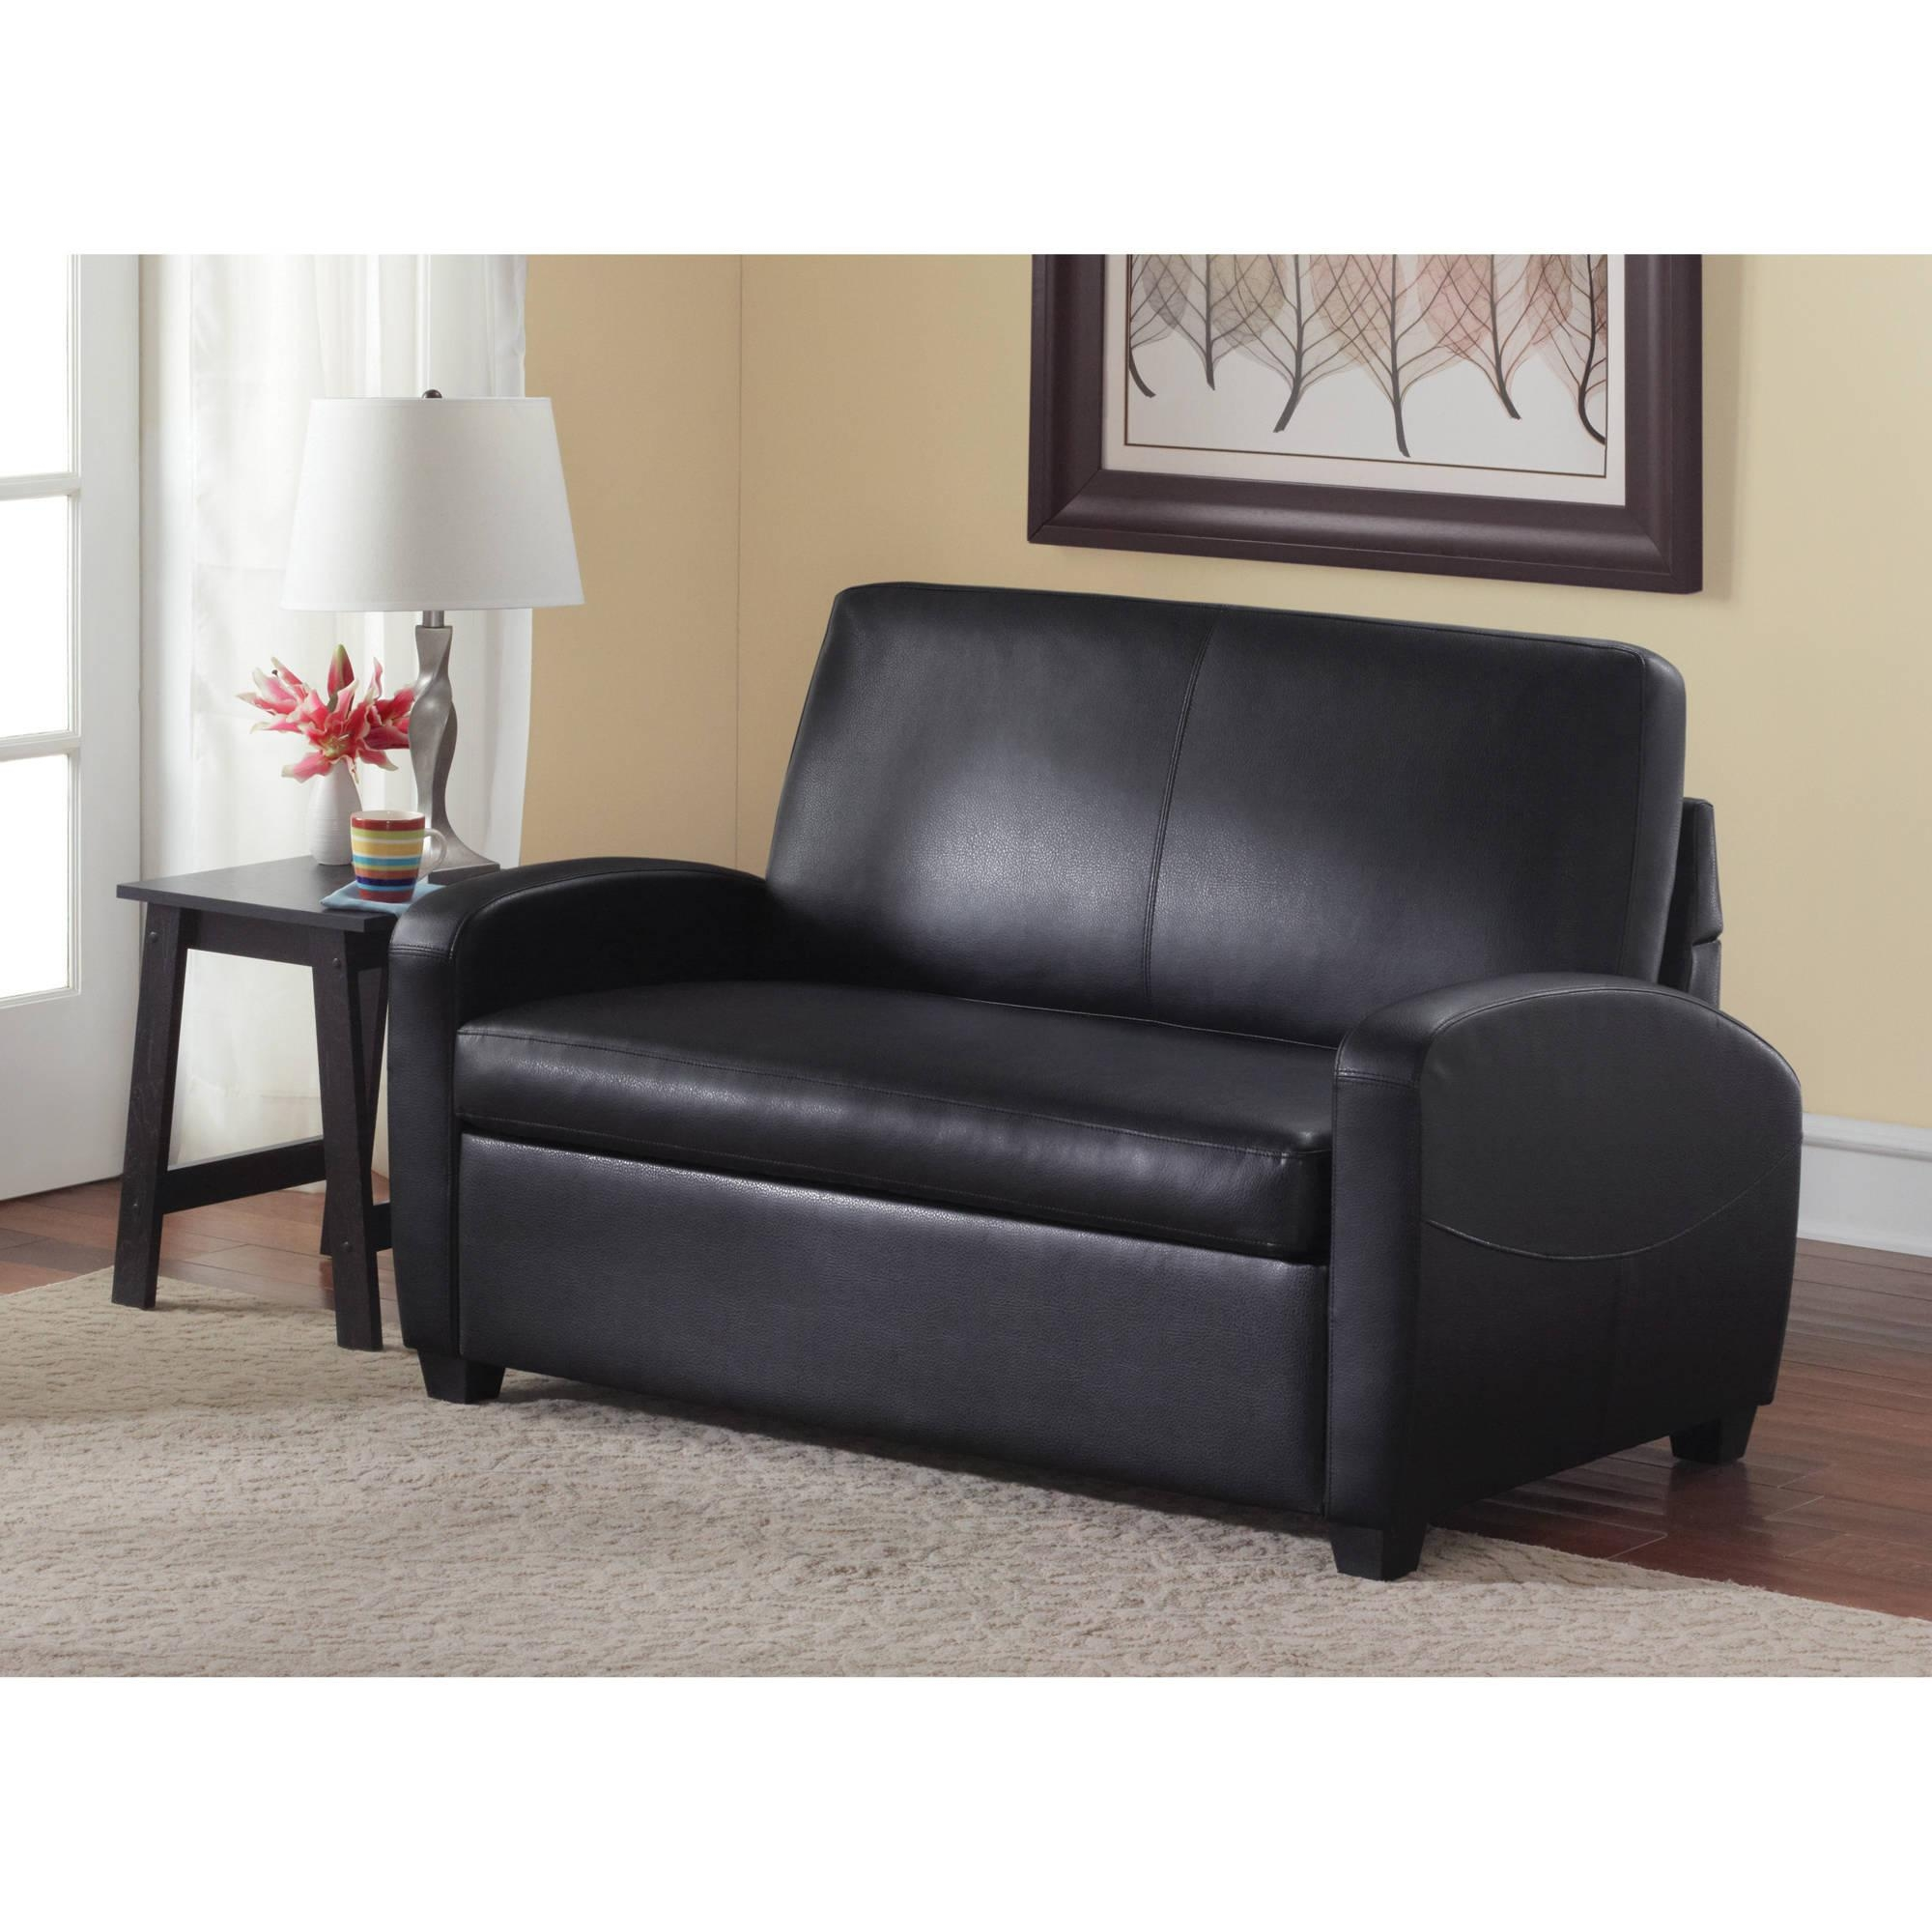 Furniture: Walmart Sofas | Sofa Bed Costco | Leather Futon Walmart Pertaining To City Sofa Beds (Image 8 of 20)